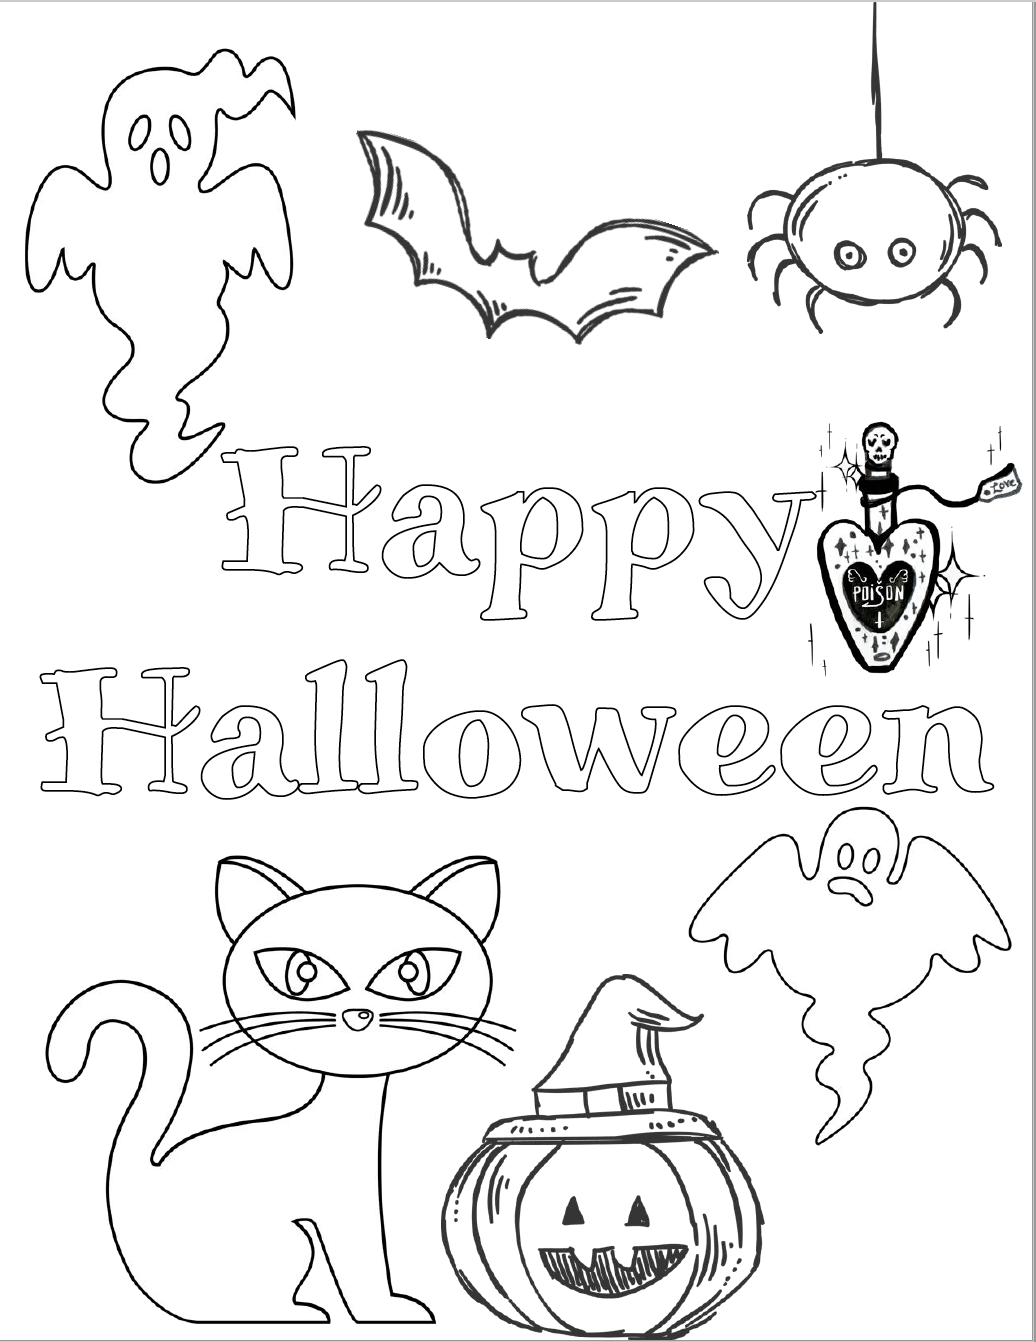 5 Free Printable Halloween Coloring Pages For Kids Halloween Coloring Pages Printable Halloween Coloring Book Halloween Printables Free